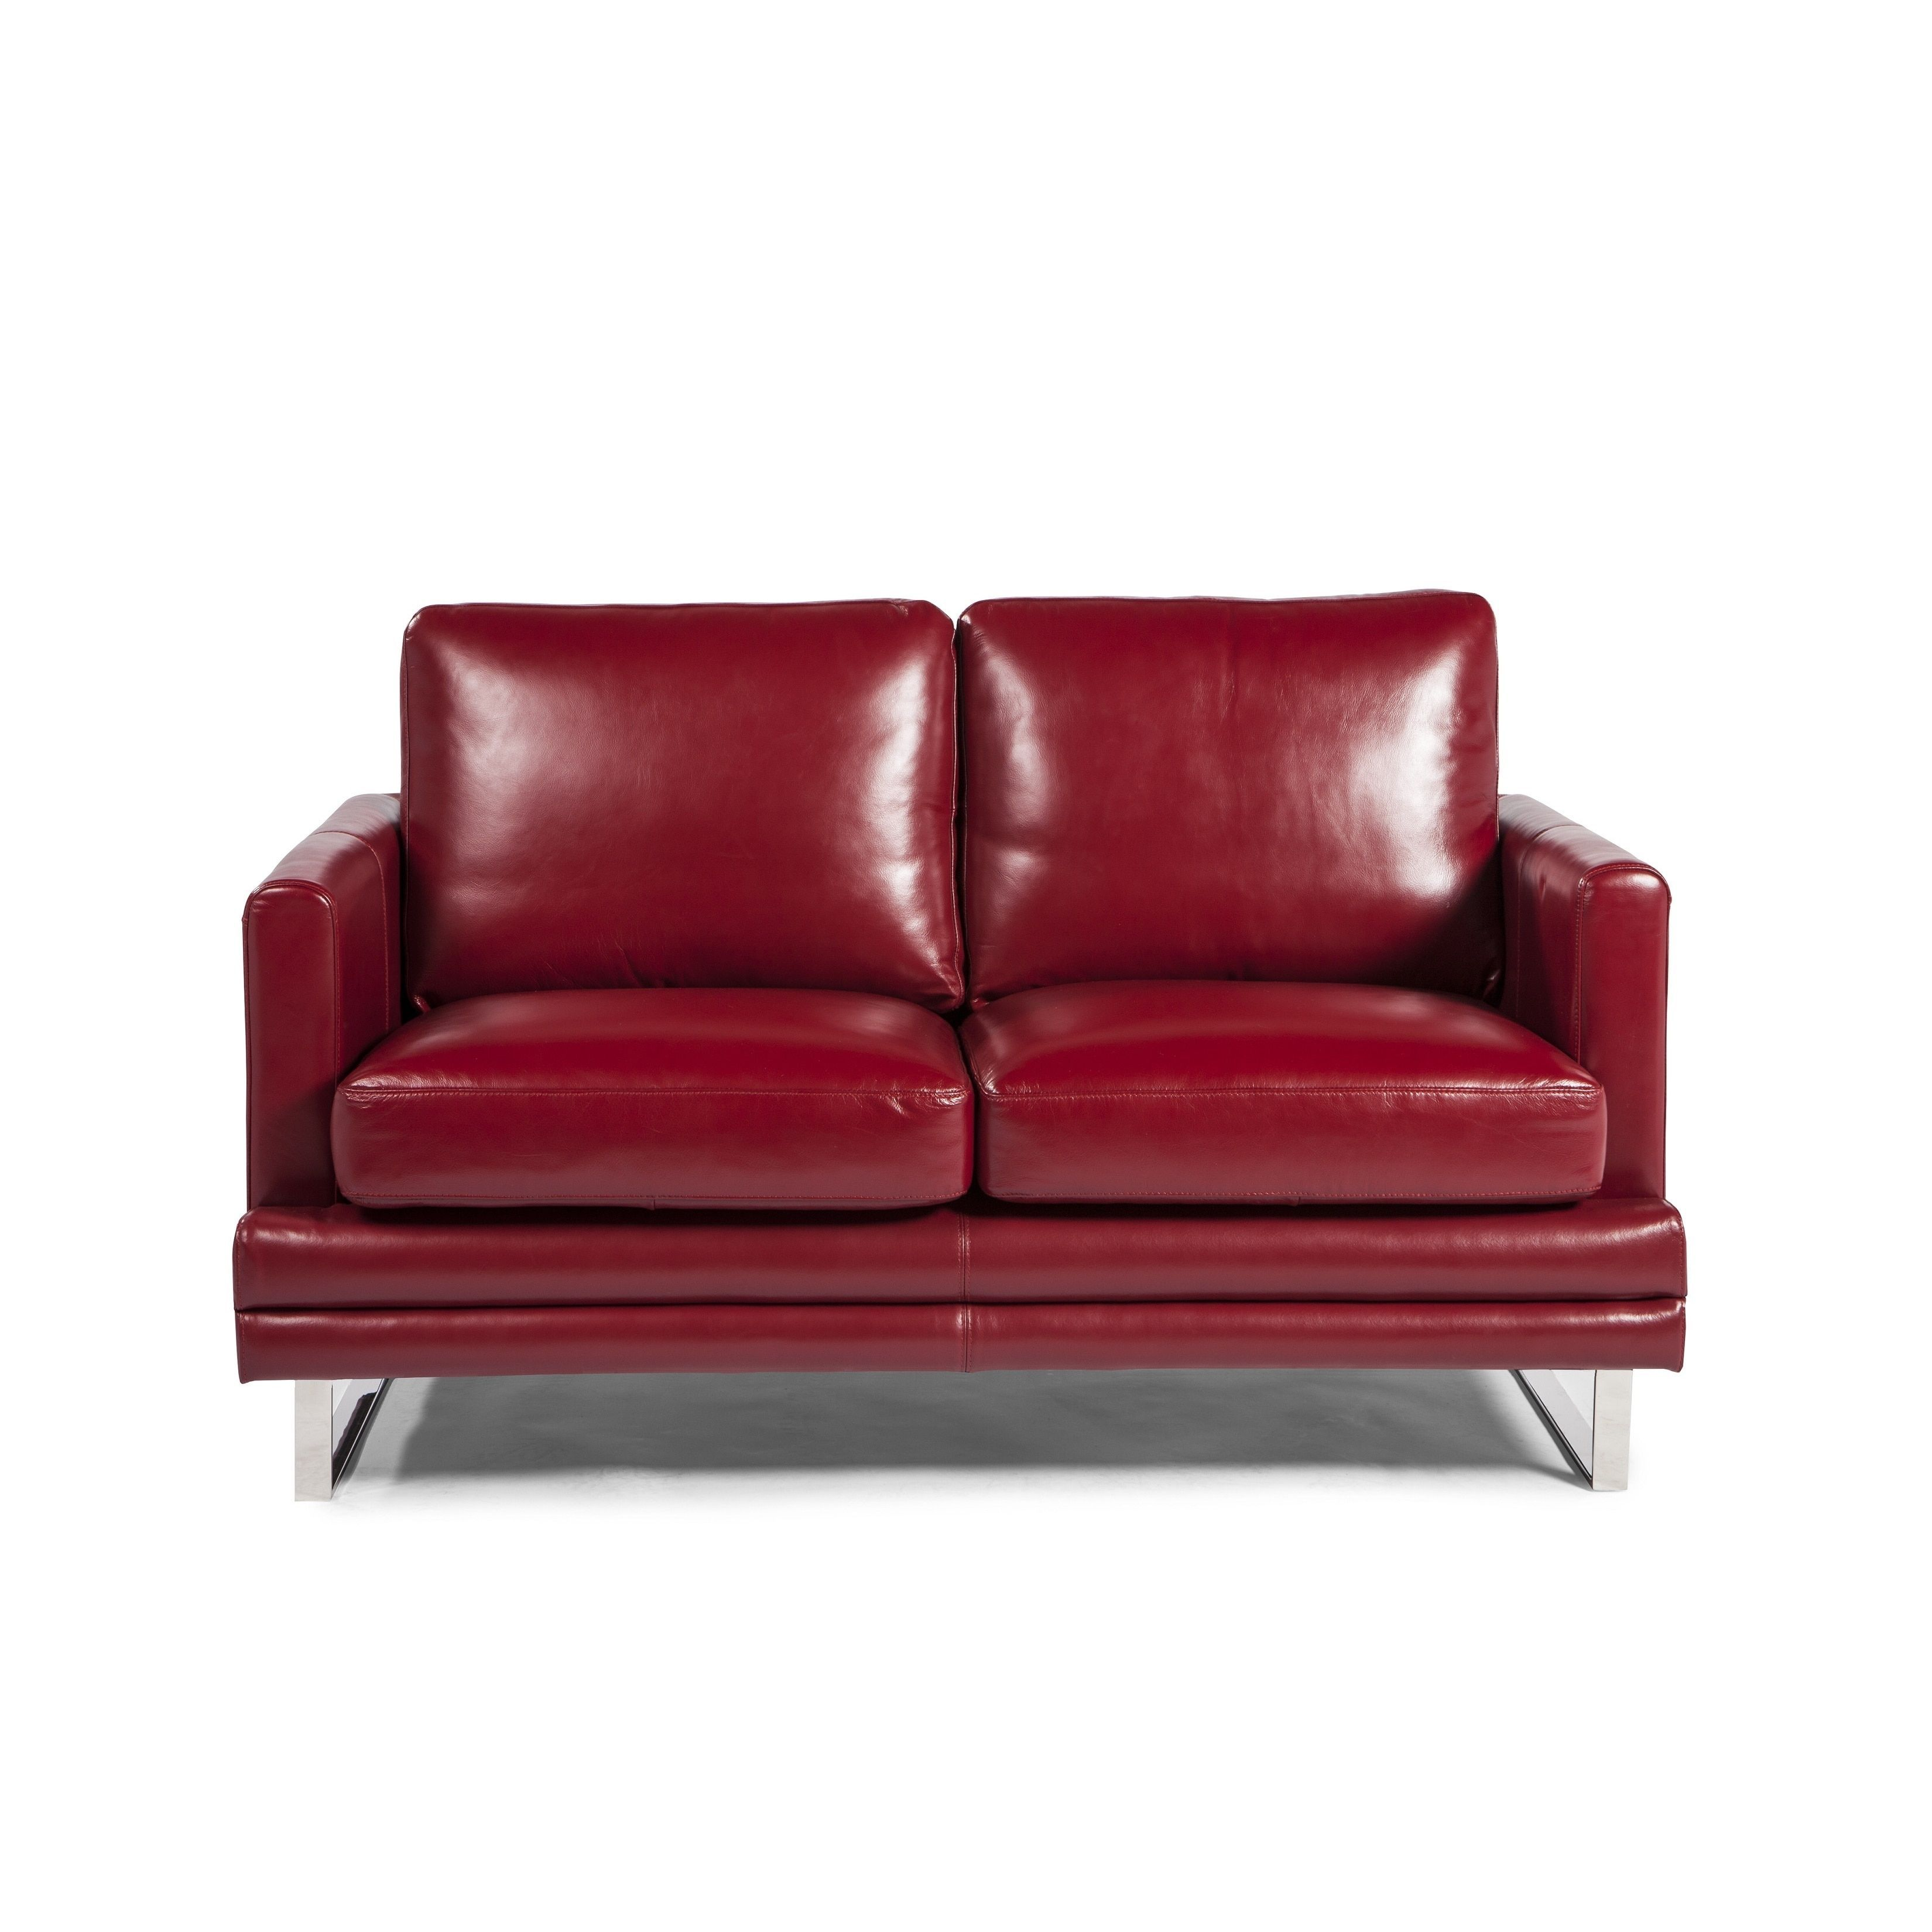 Awesome Red Bonded Leather Loveseat